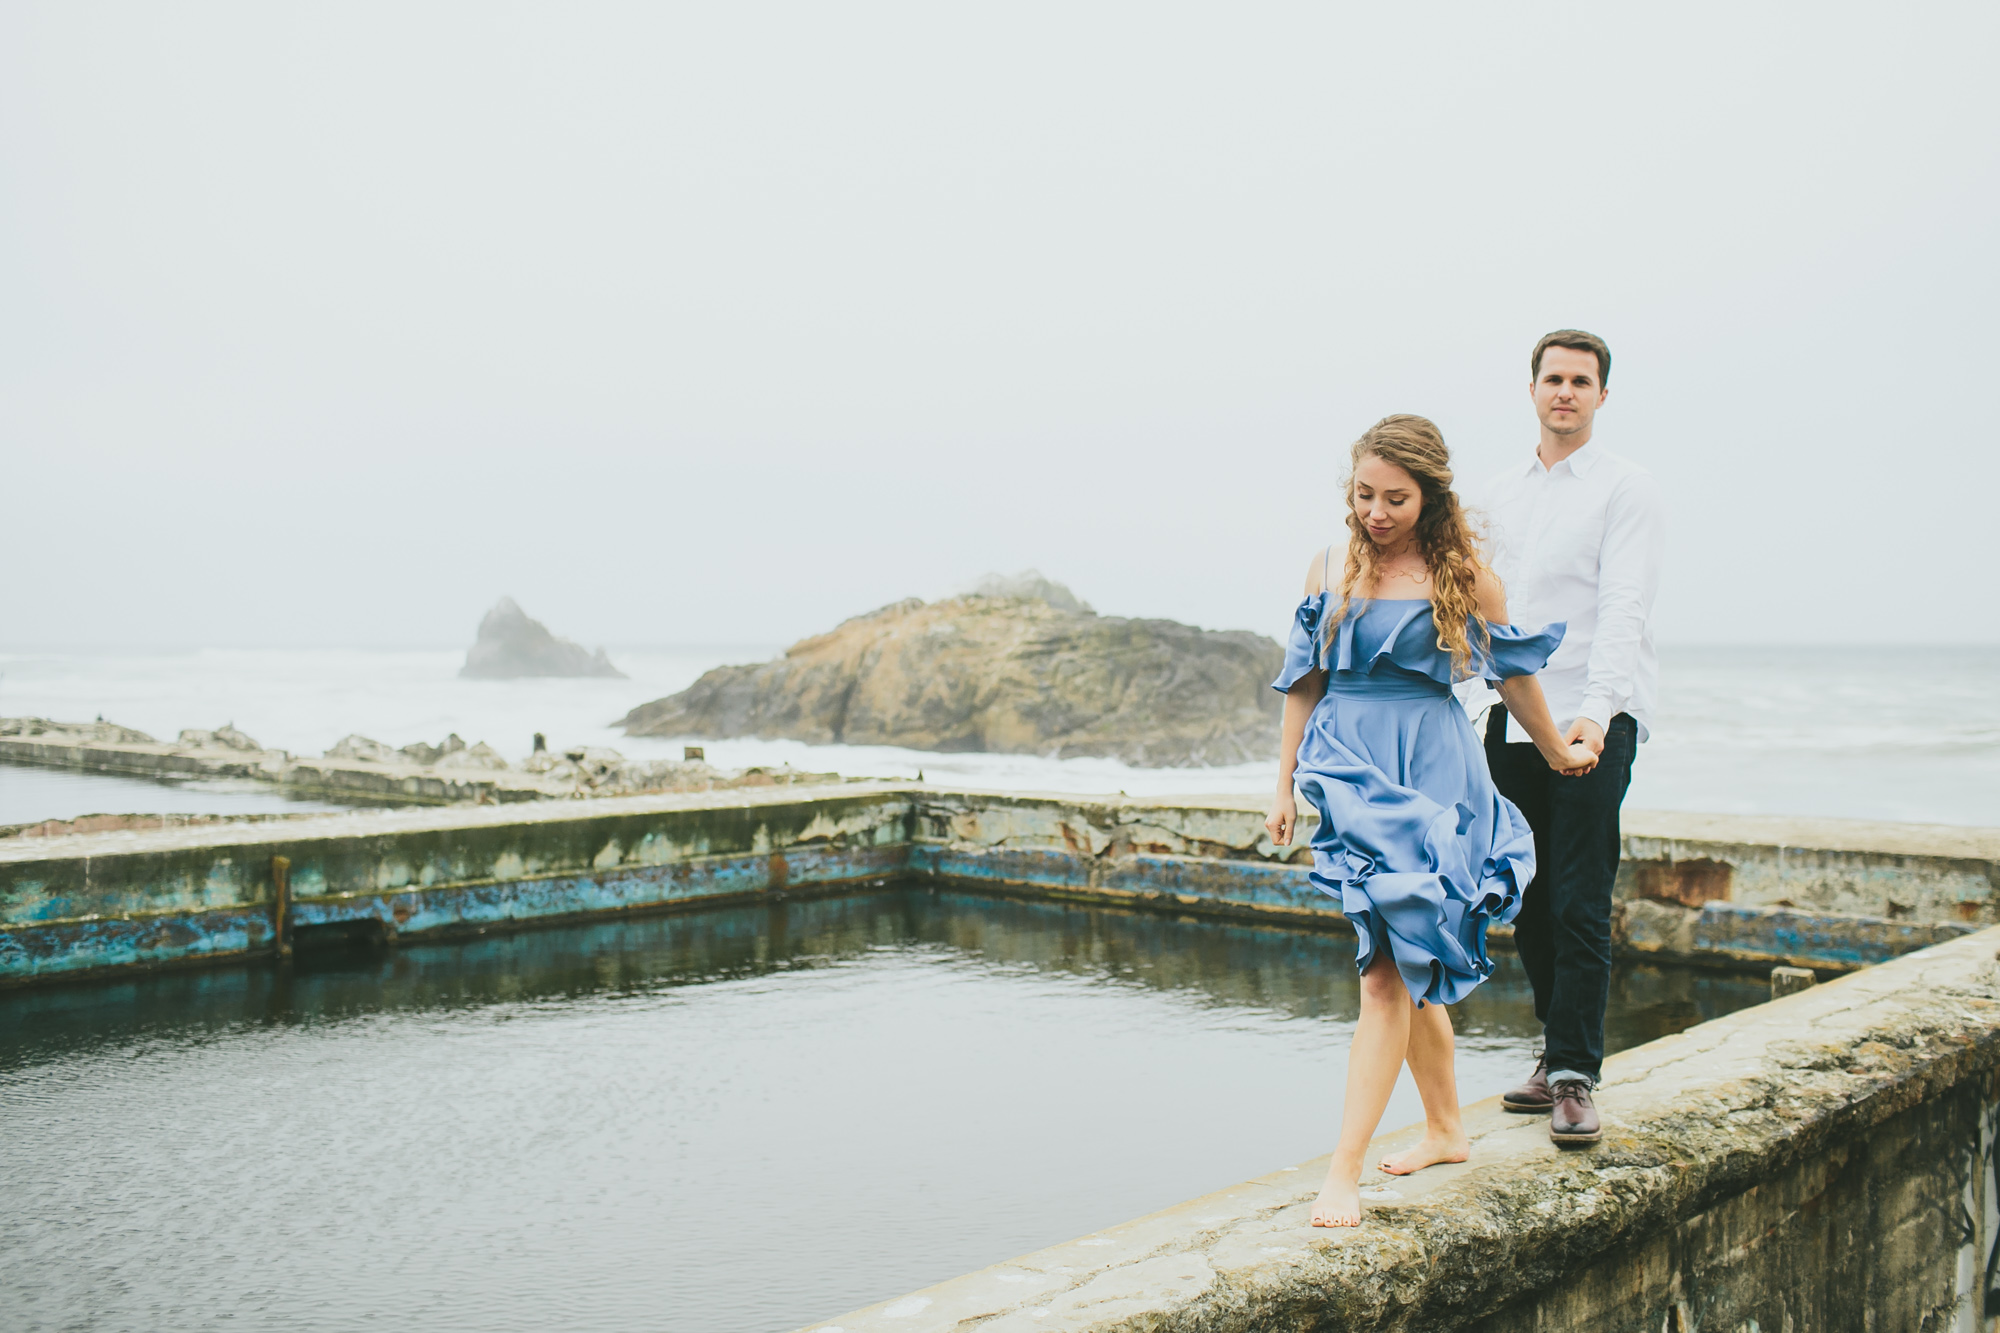 Emily+Paul-ENGAGEMENT_KellyBoitano-WEB-30